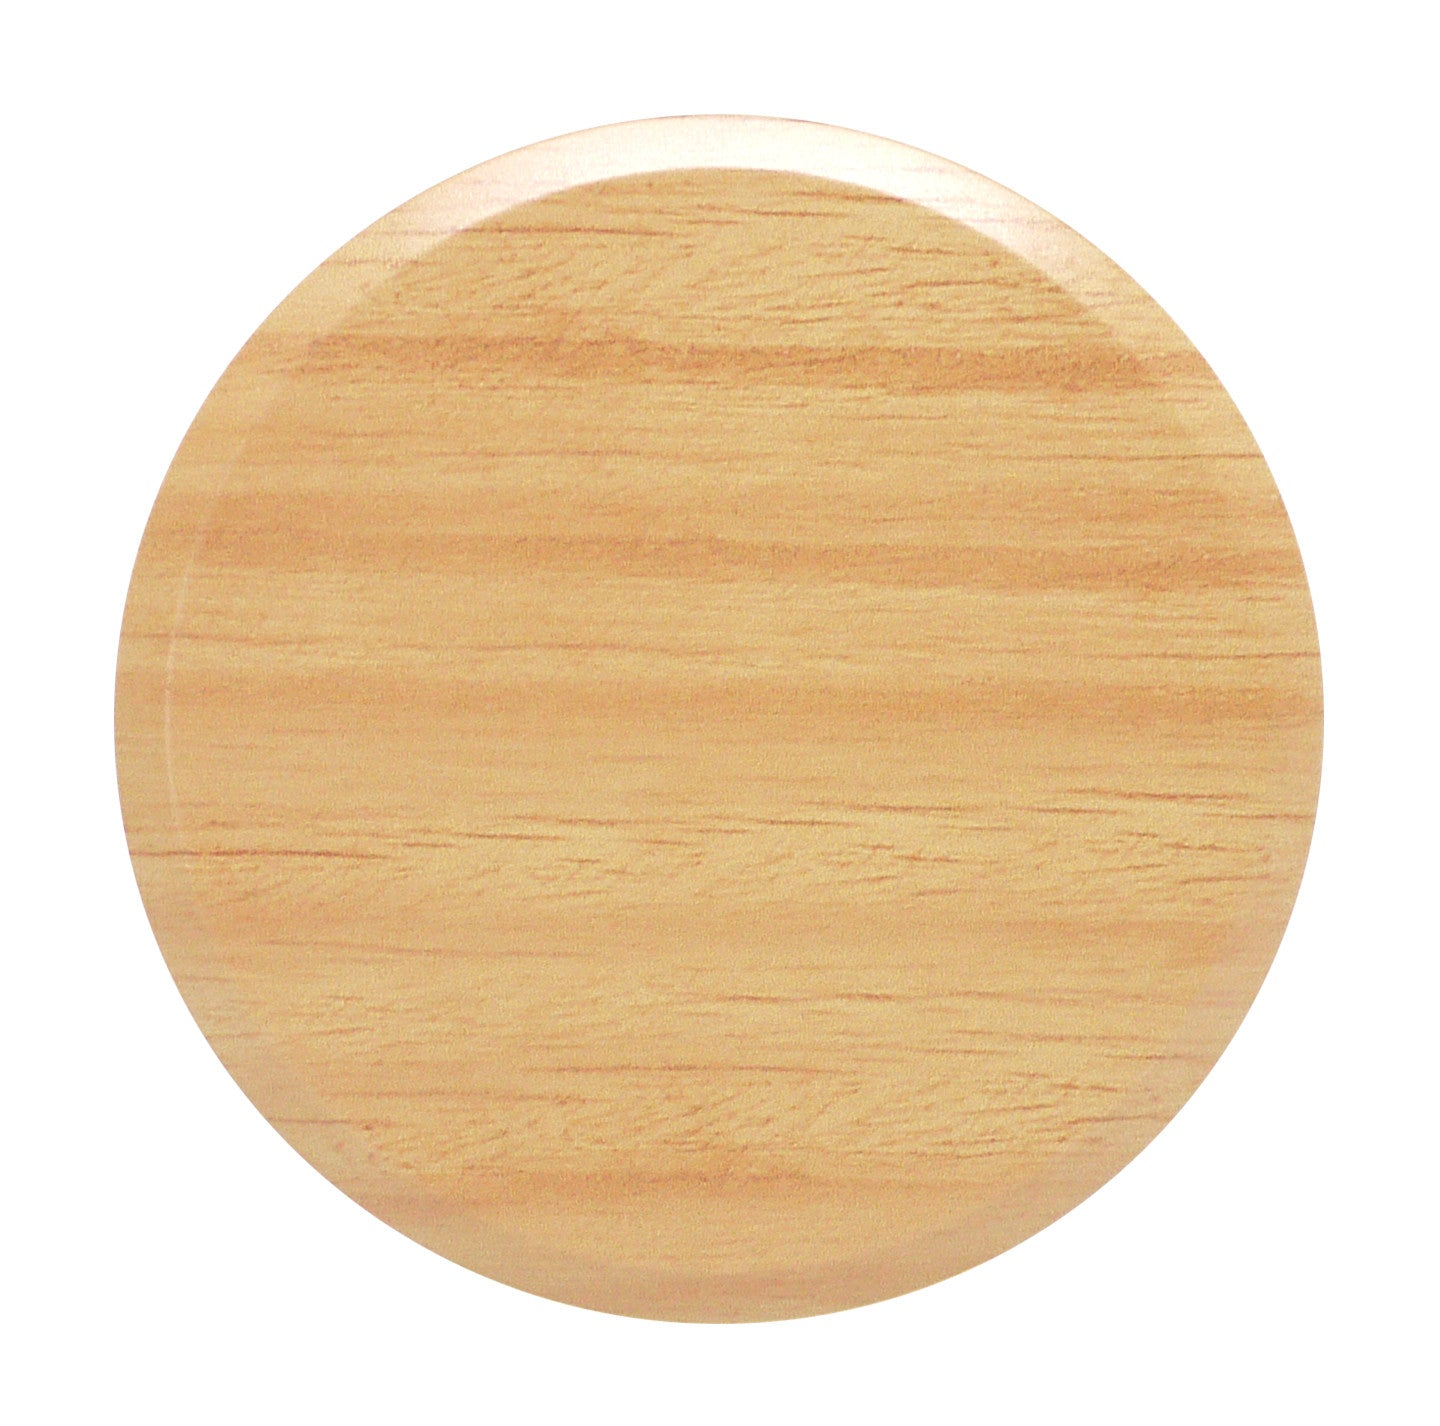 "Cover Plate for RC Sprinklers, 3-1/4"" Round, Yellow Birch"